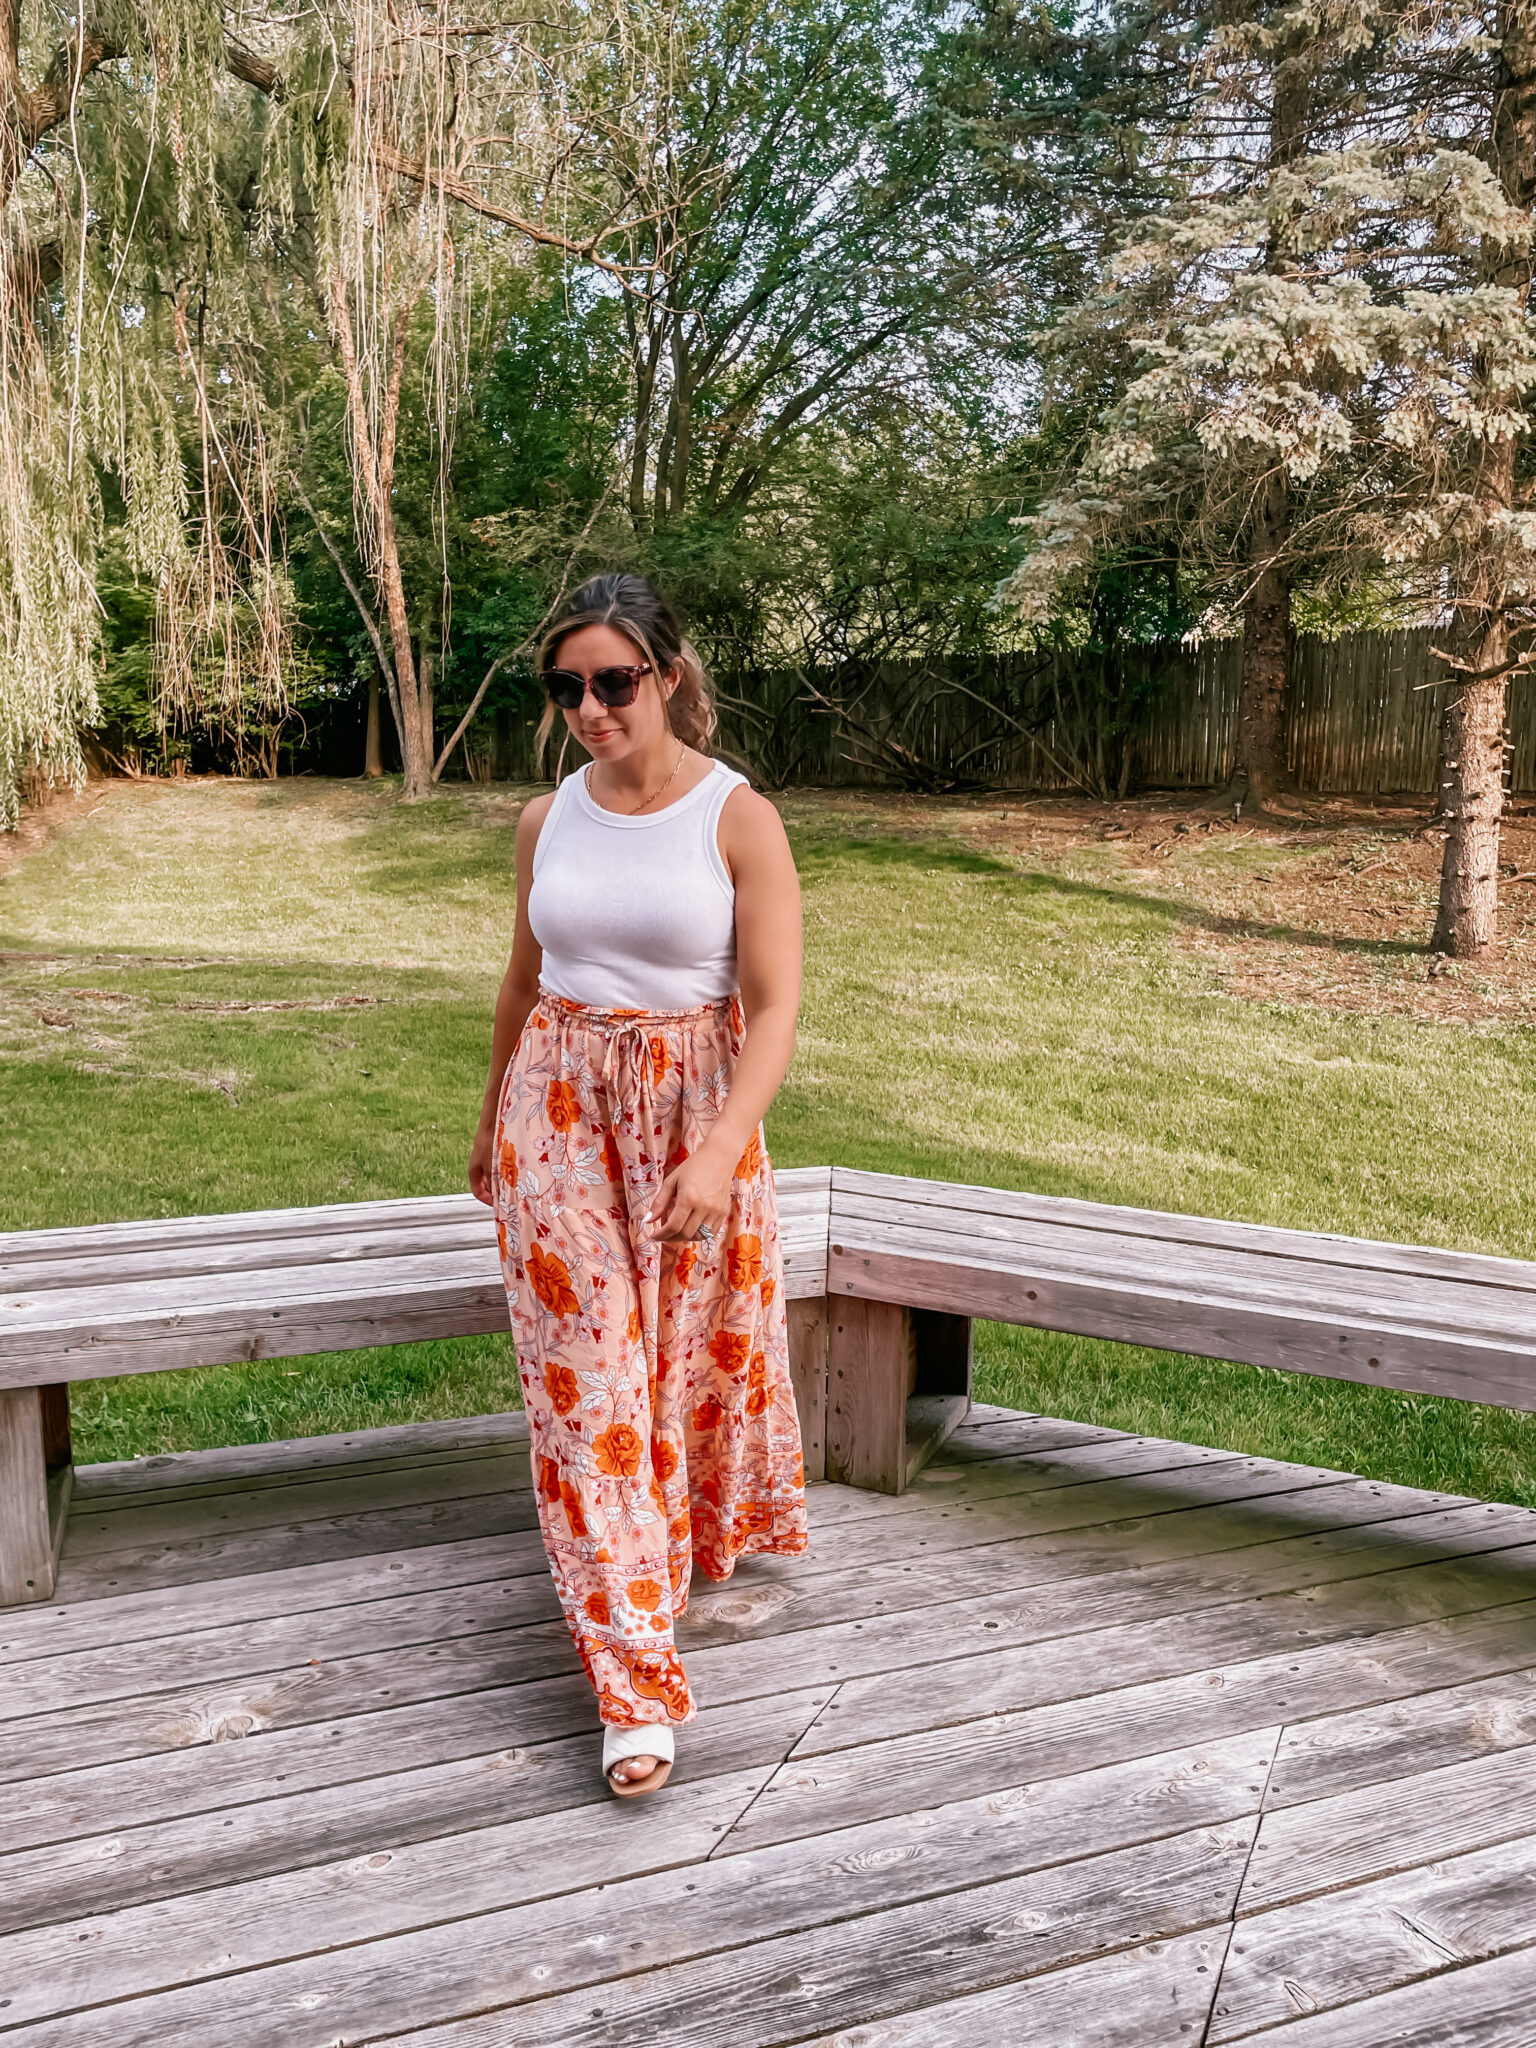 Summer Maxi Skirt by popular Chicago fashion blog, Glass of Glam: image of a woman standing outside and wearing a white tank top, sunglasses, white sandals, and orange and pink floral maxi skirt.